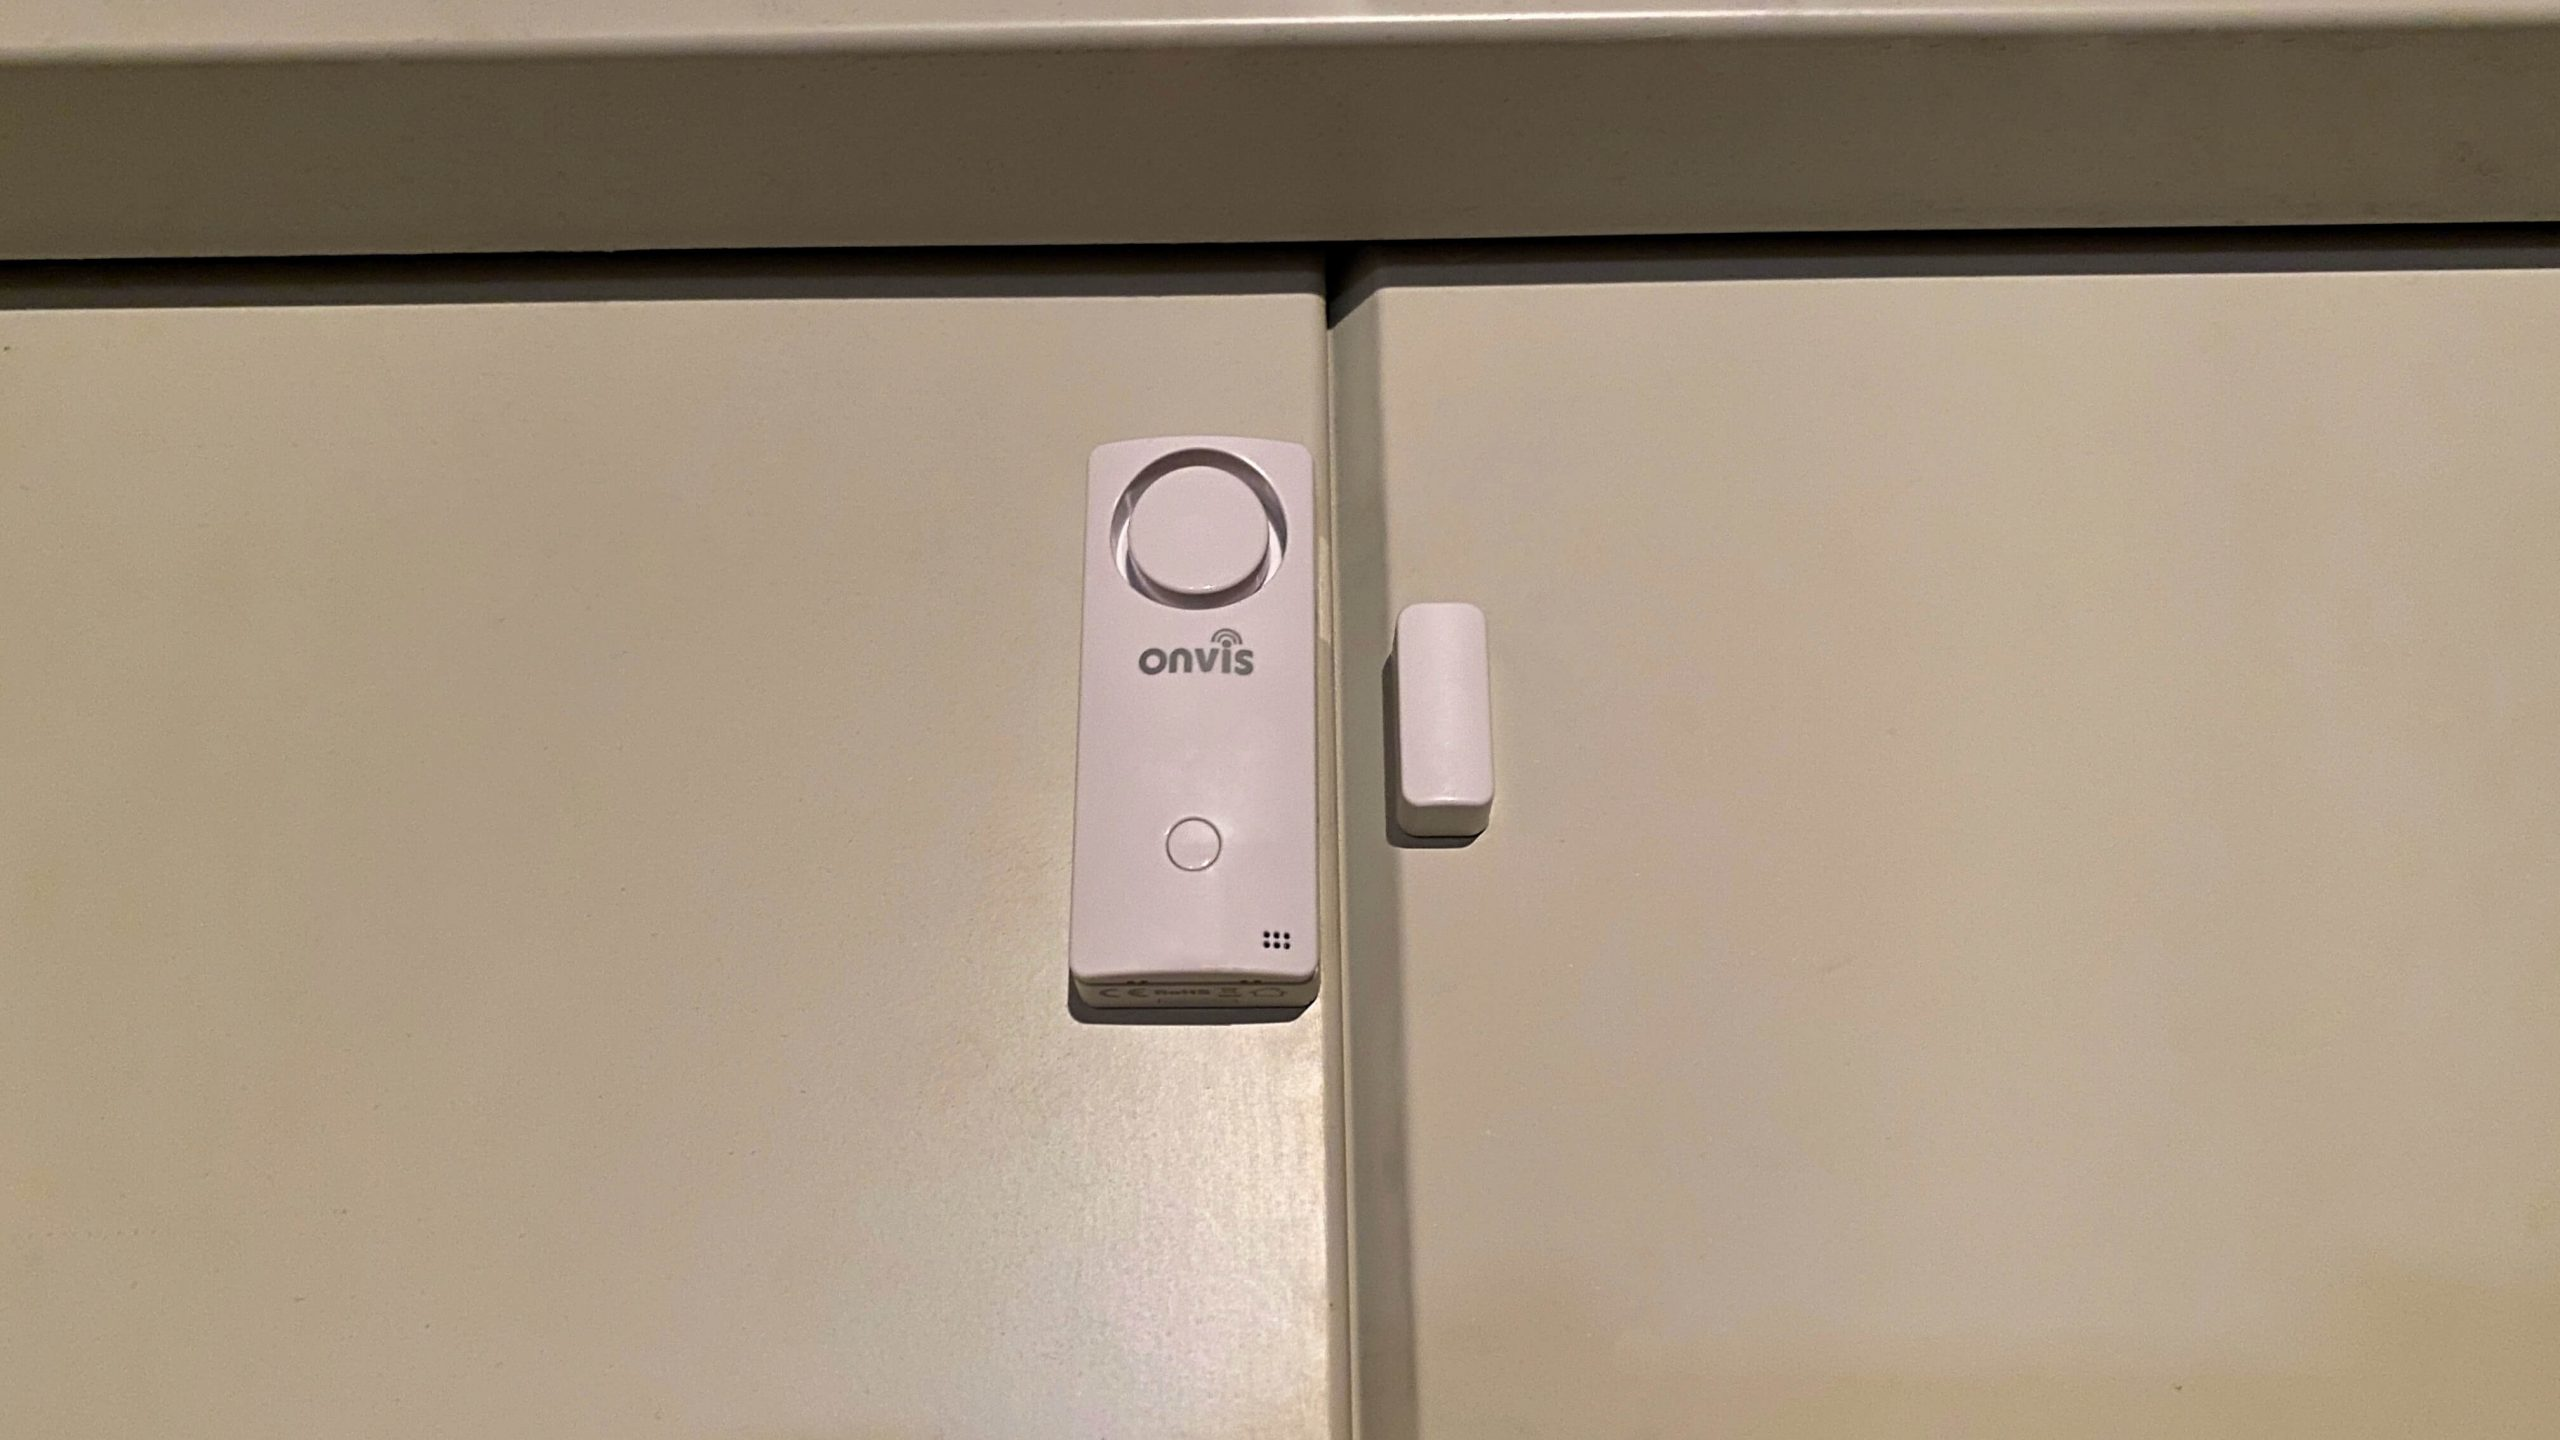 Onvis_CS1_Apple_HomeKit_Sensor_Alarmanlage_Kontaktsensor3-scaled Onvis CS1 - das Sensormeisterwerk mit Apple HomeKit